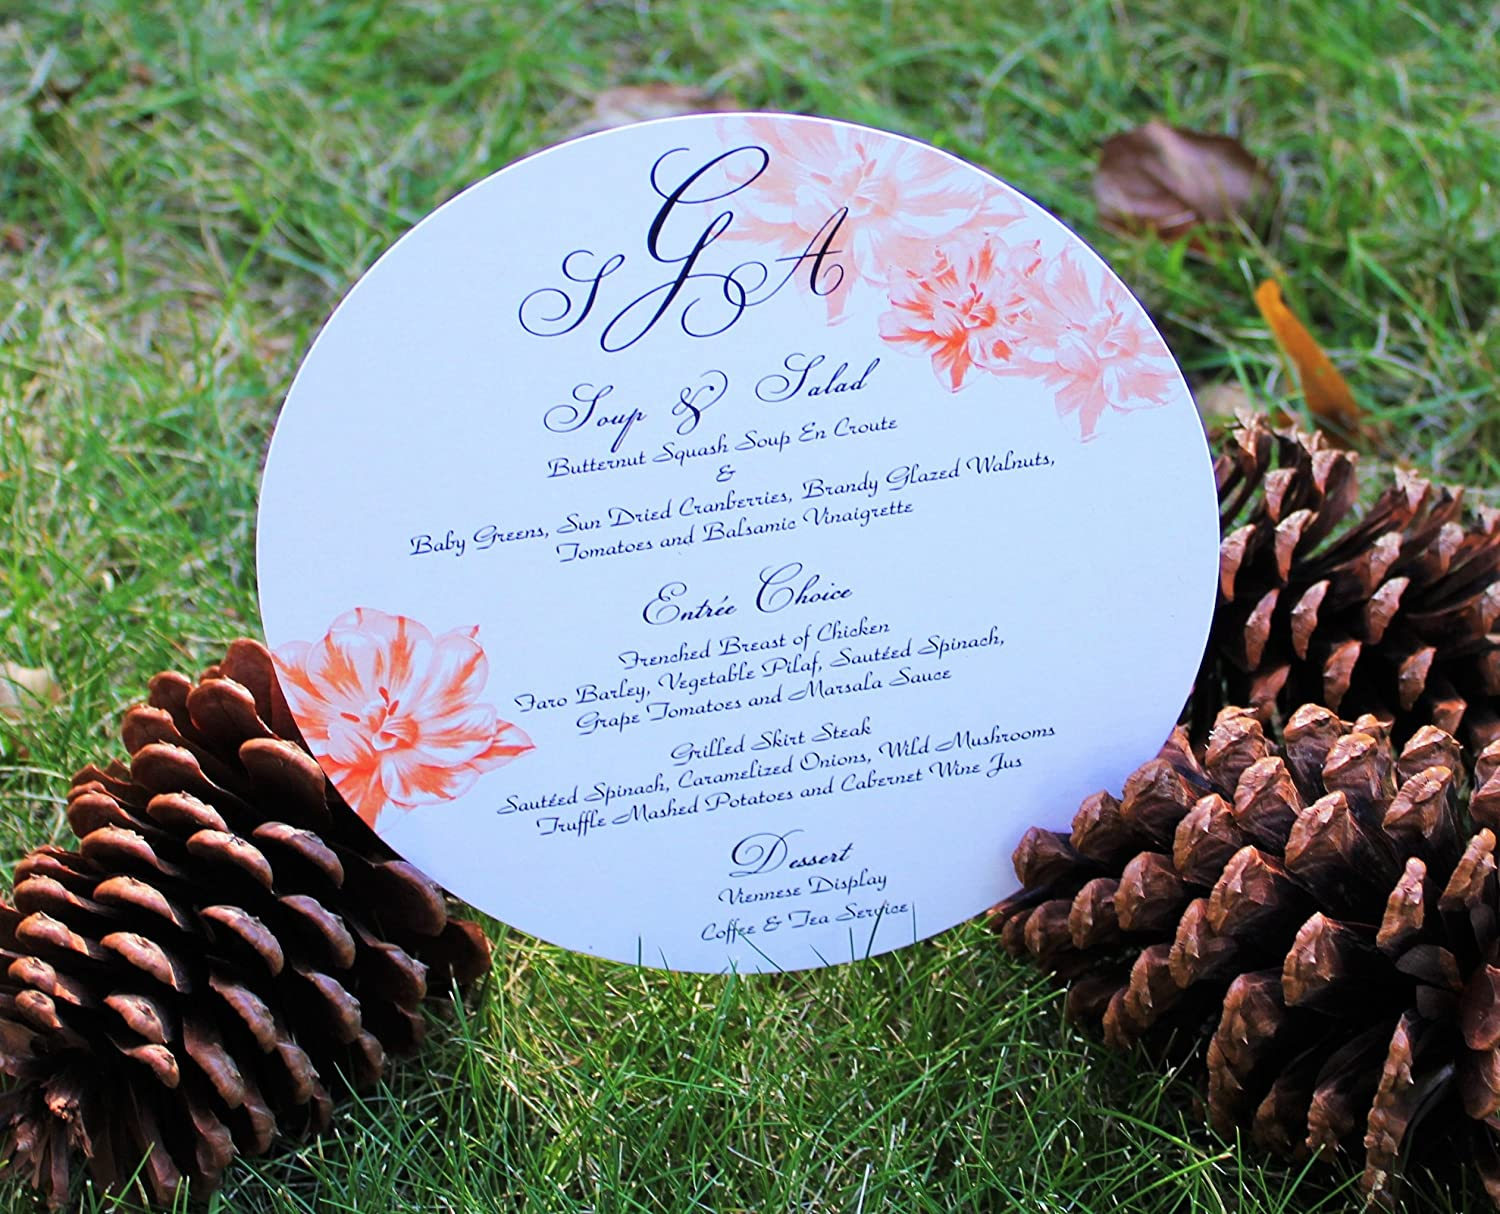 B01E923BAA Set of 10 Flower Circle Menu Cards for Wedding, Baptism, Christening, Bridal Shower, baby Shower, ANY EVENT!! All Wording Customized for You! 91B2BlLrmAIL